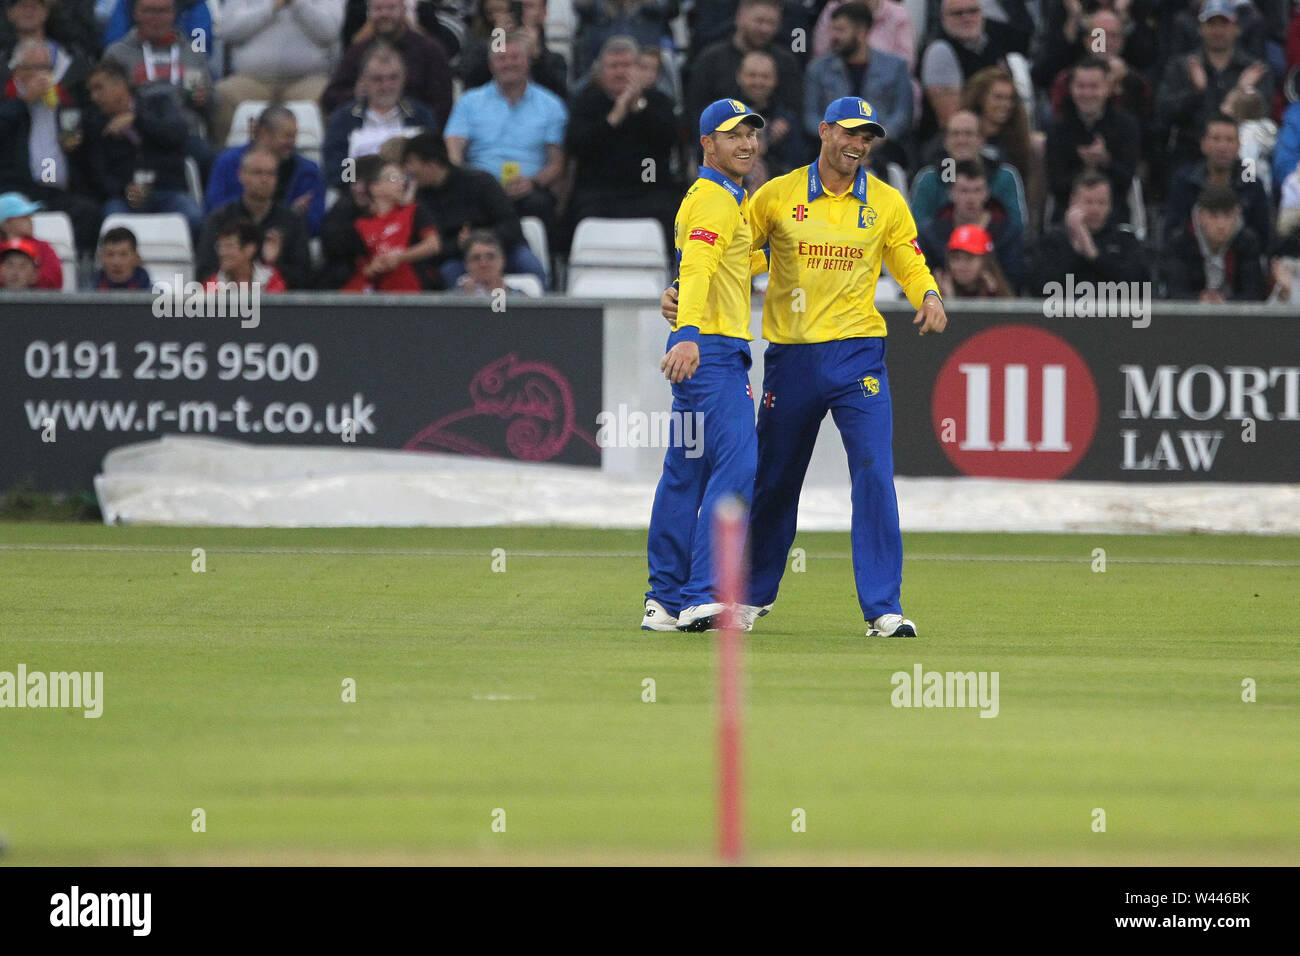 CHESTER LE STREET, ENGLAND 19th July 2019. Jack Burnham and D'arcy Short of Durham during the Vitality T20 Blast match between Durham County Cricket Club and Northamptonshire County Cricket Club at Emirates Riverside, Chester le Street on Friday 19th July 2019. (Credit: Mark Fletcher   MI News ) Credit: MI News & Sport /Alamy Live News - Stock Image